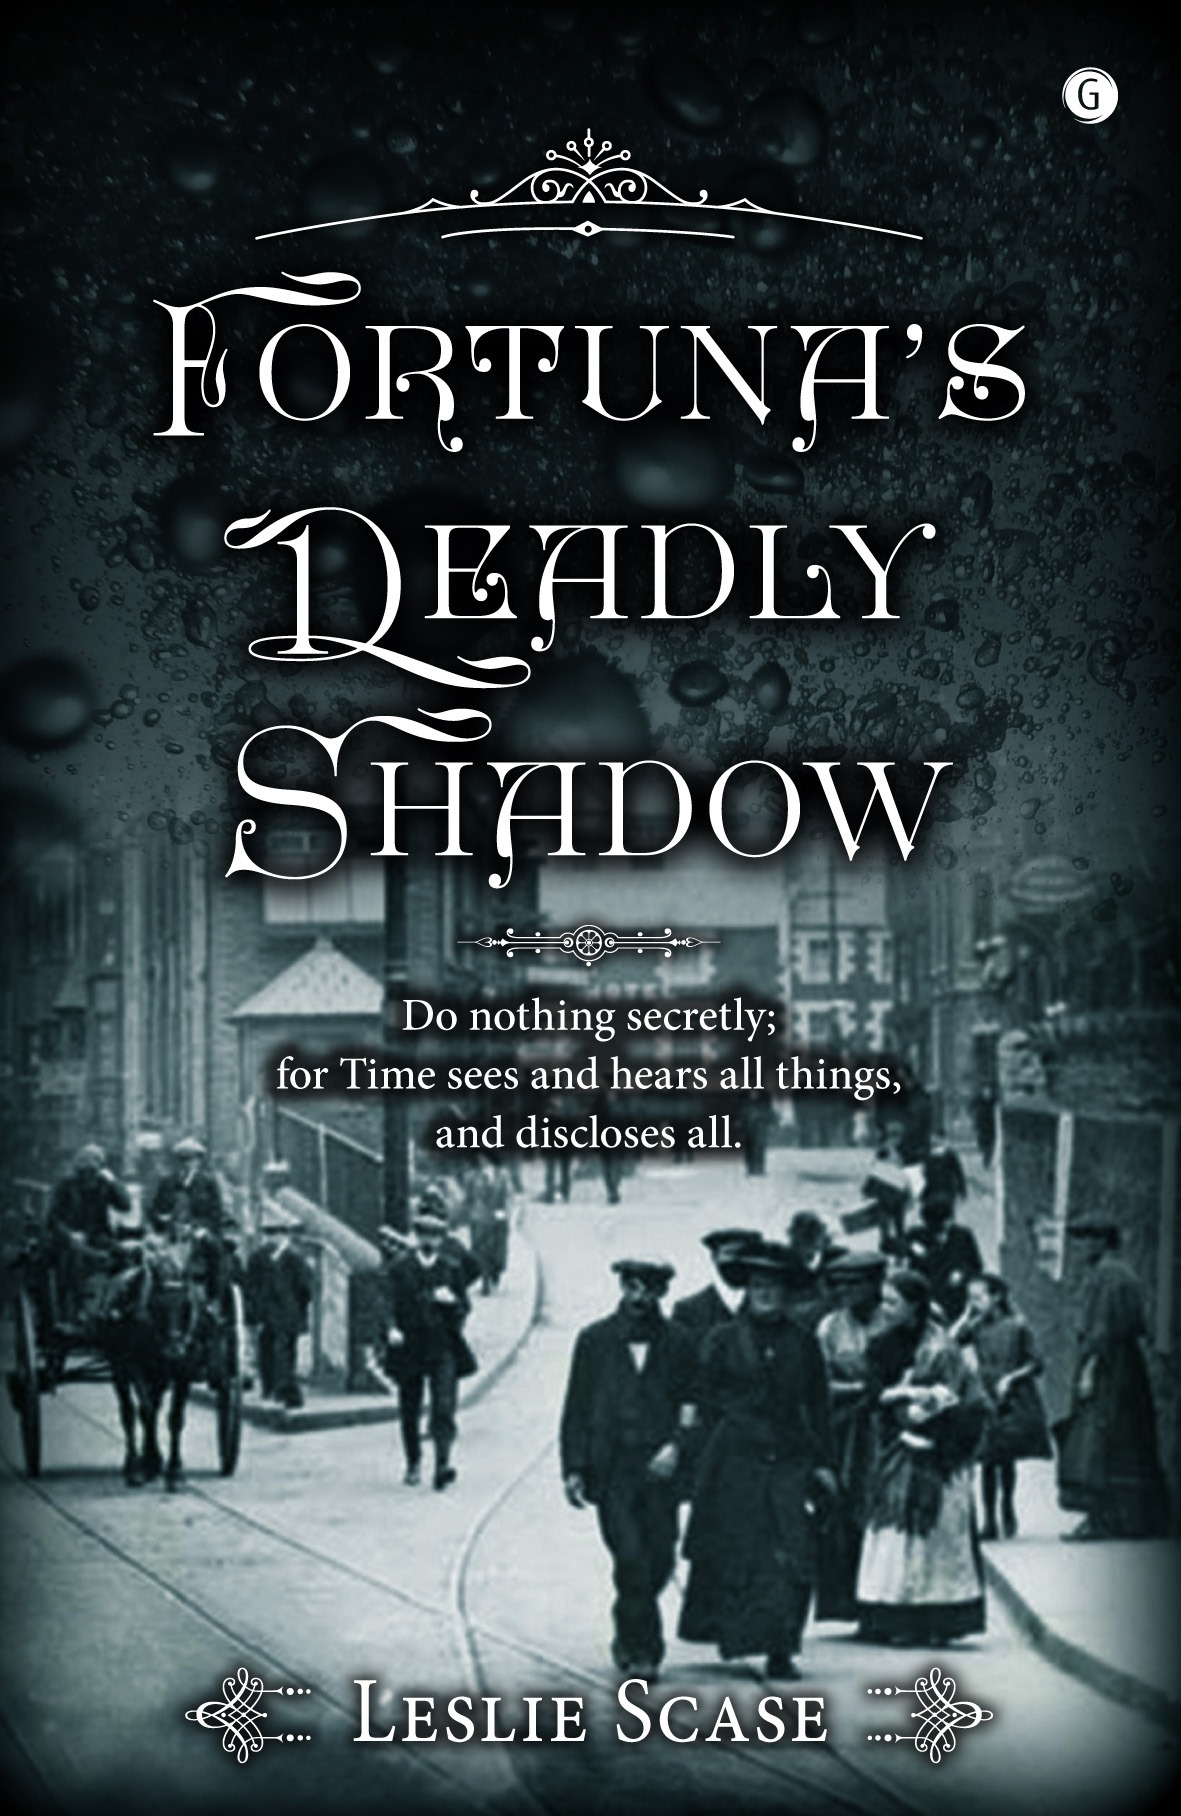 Leslie Scase Fortunas Deadly Shadow